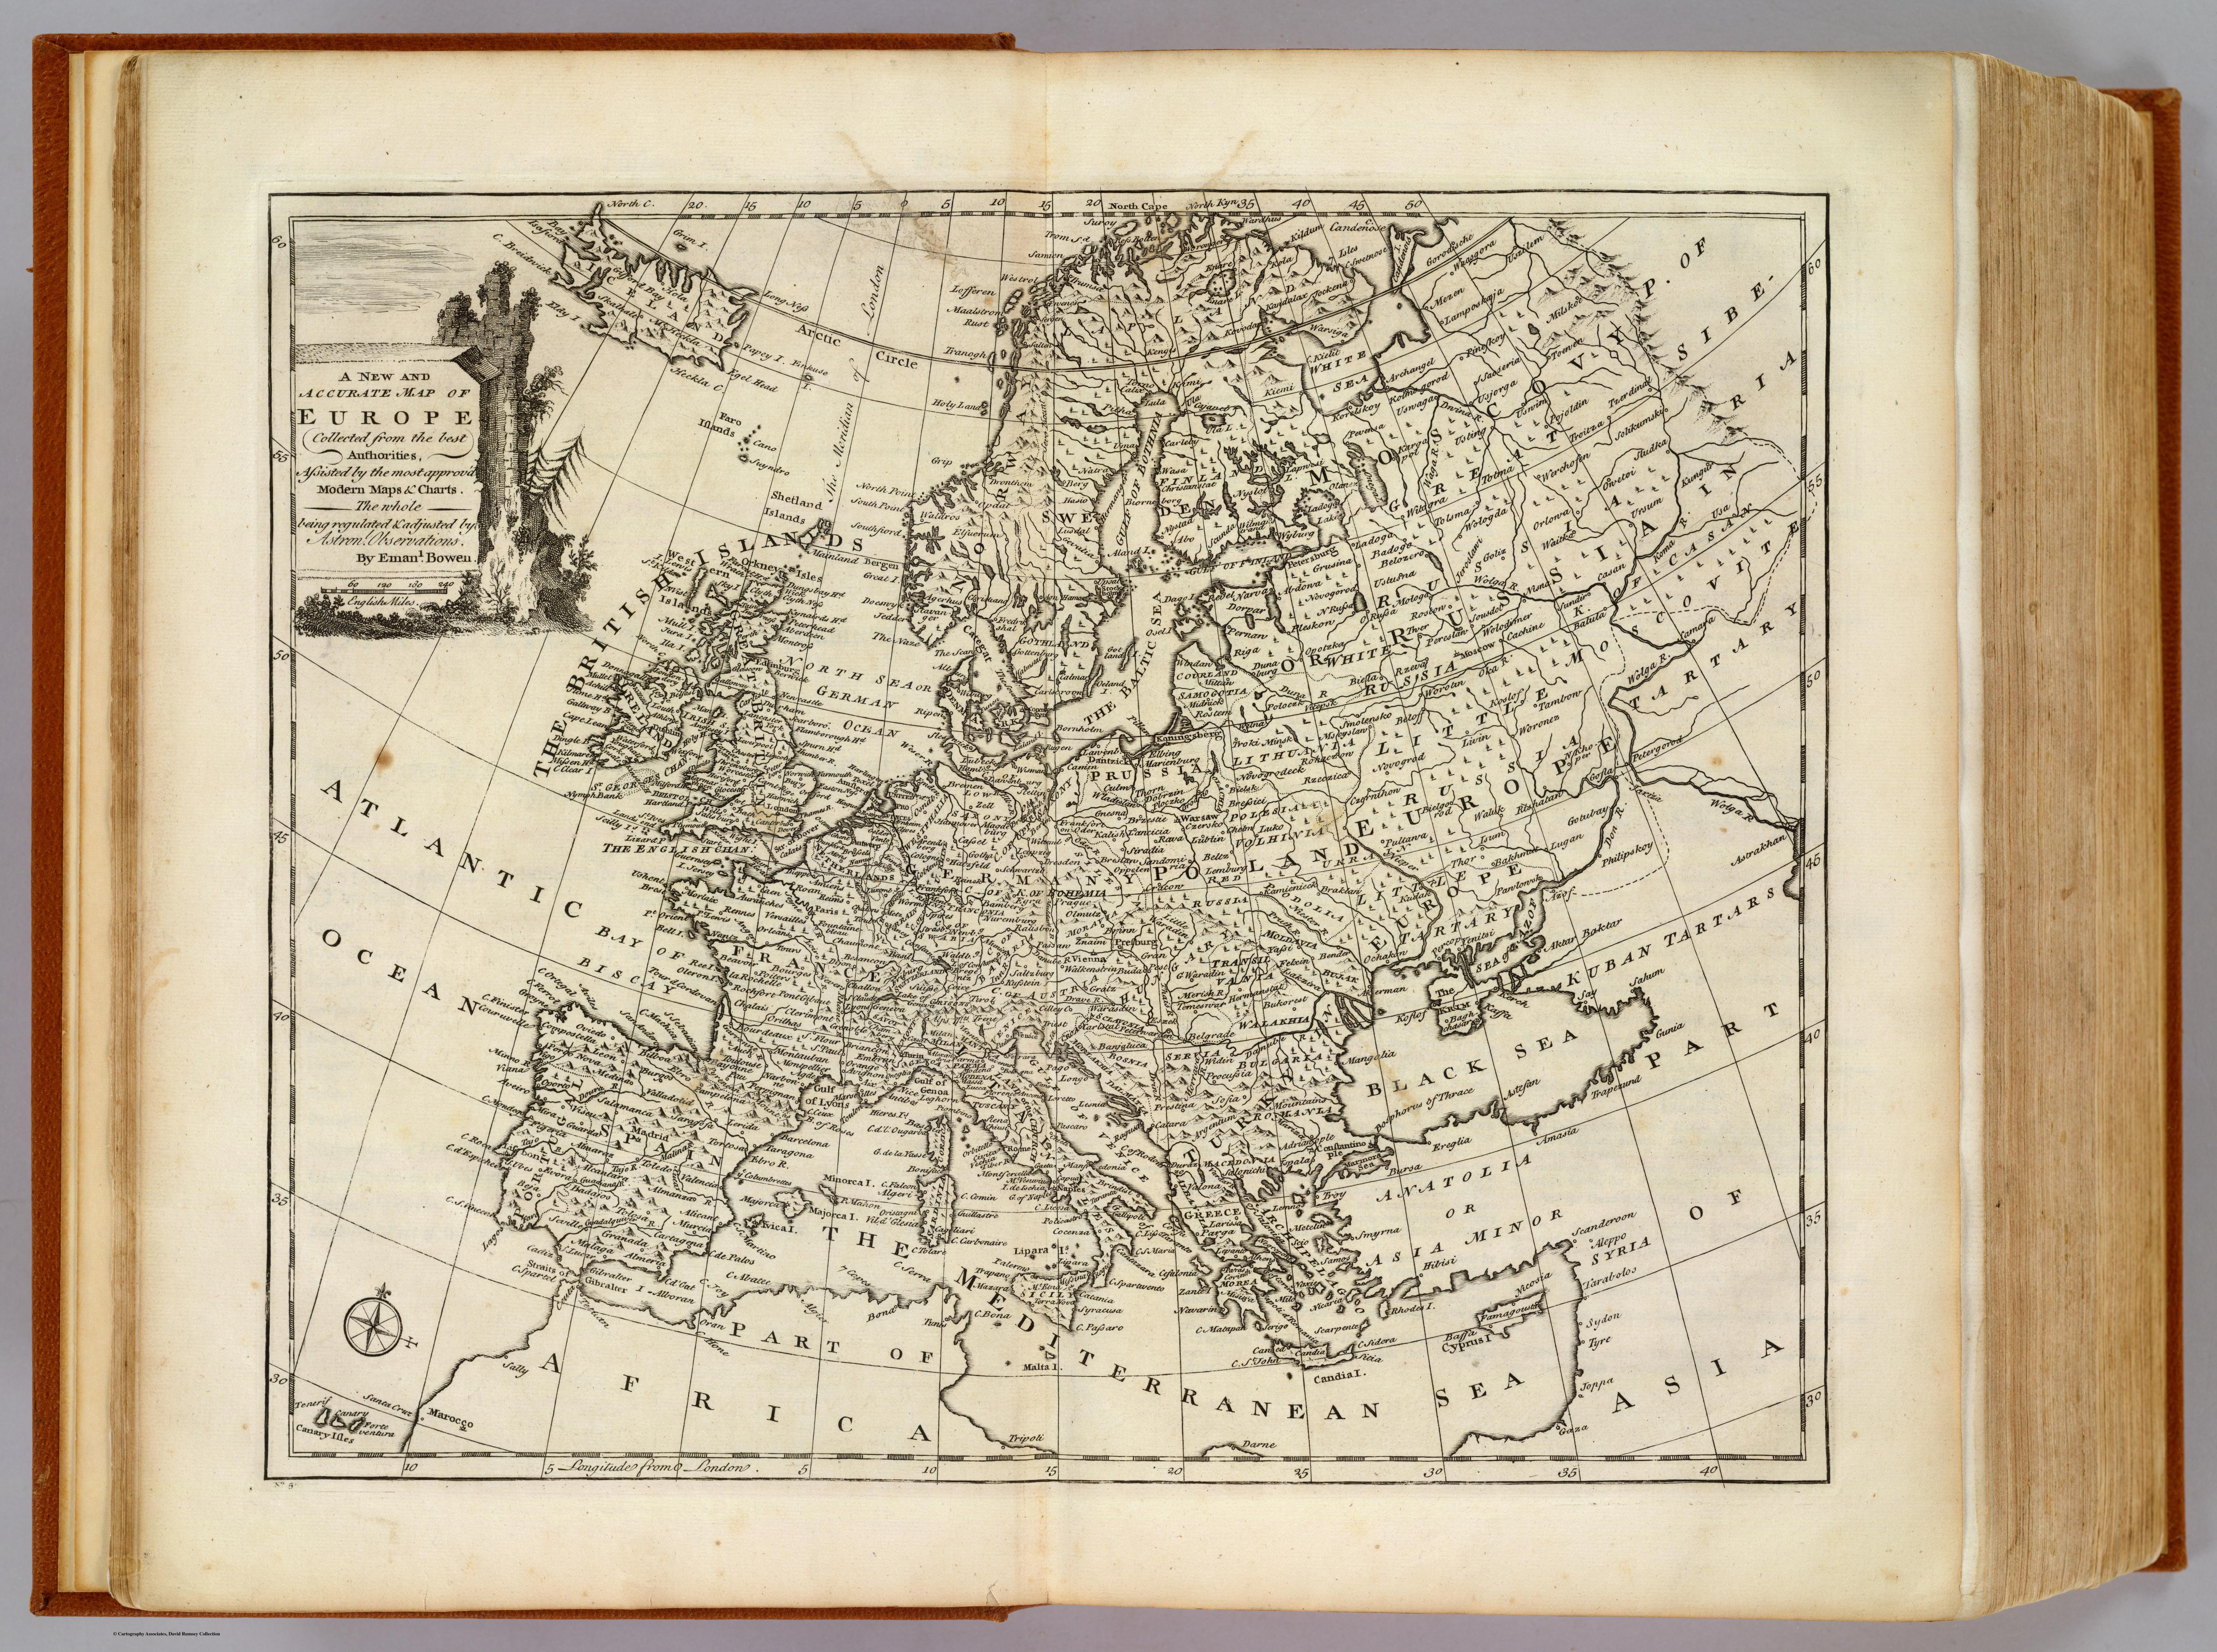 File:Europe map 1747 Bowen.jpg